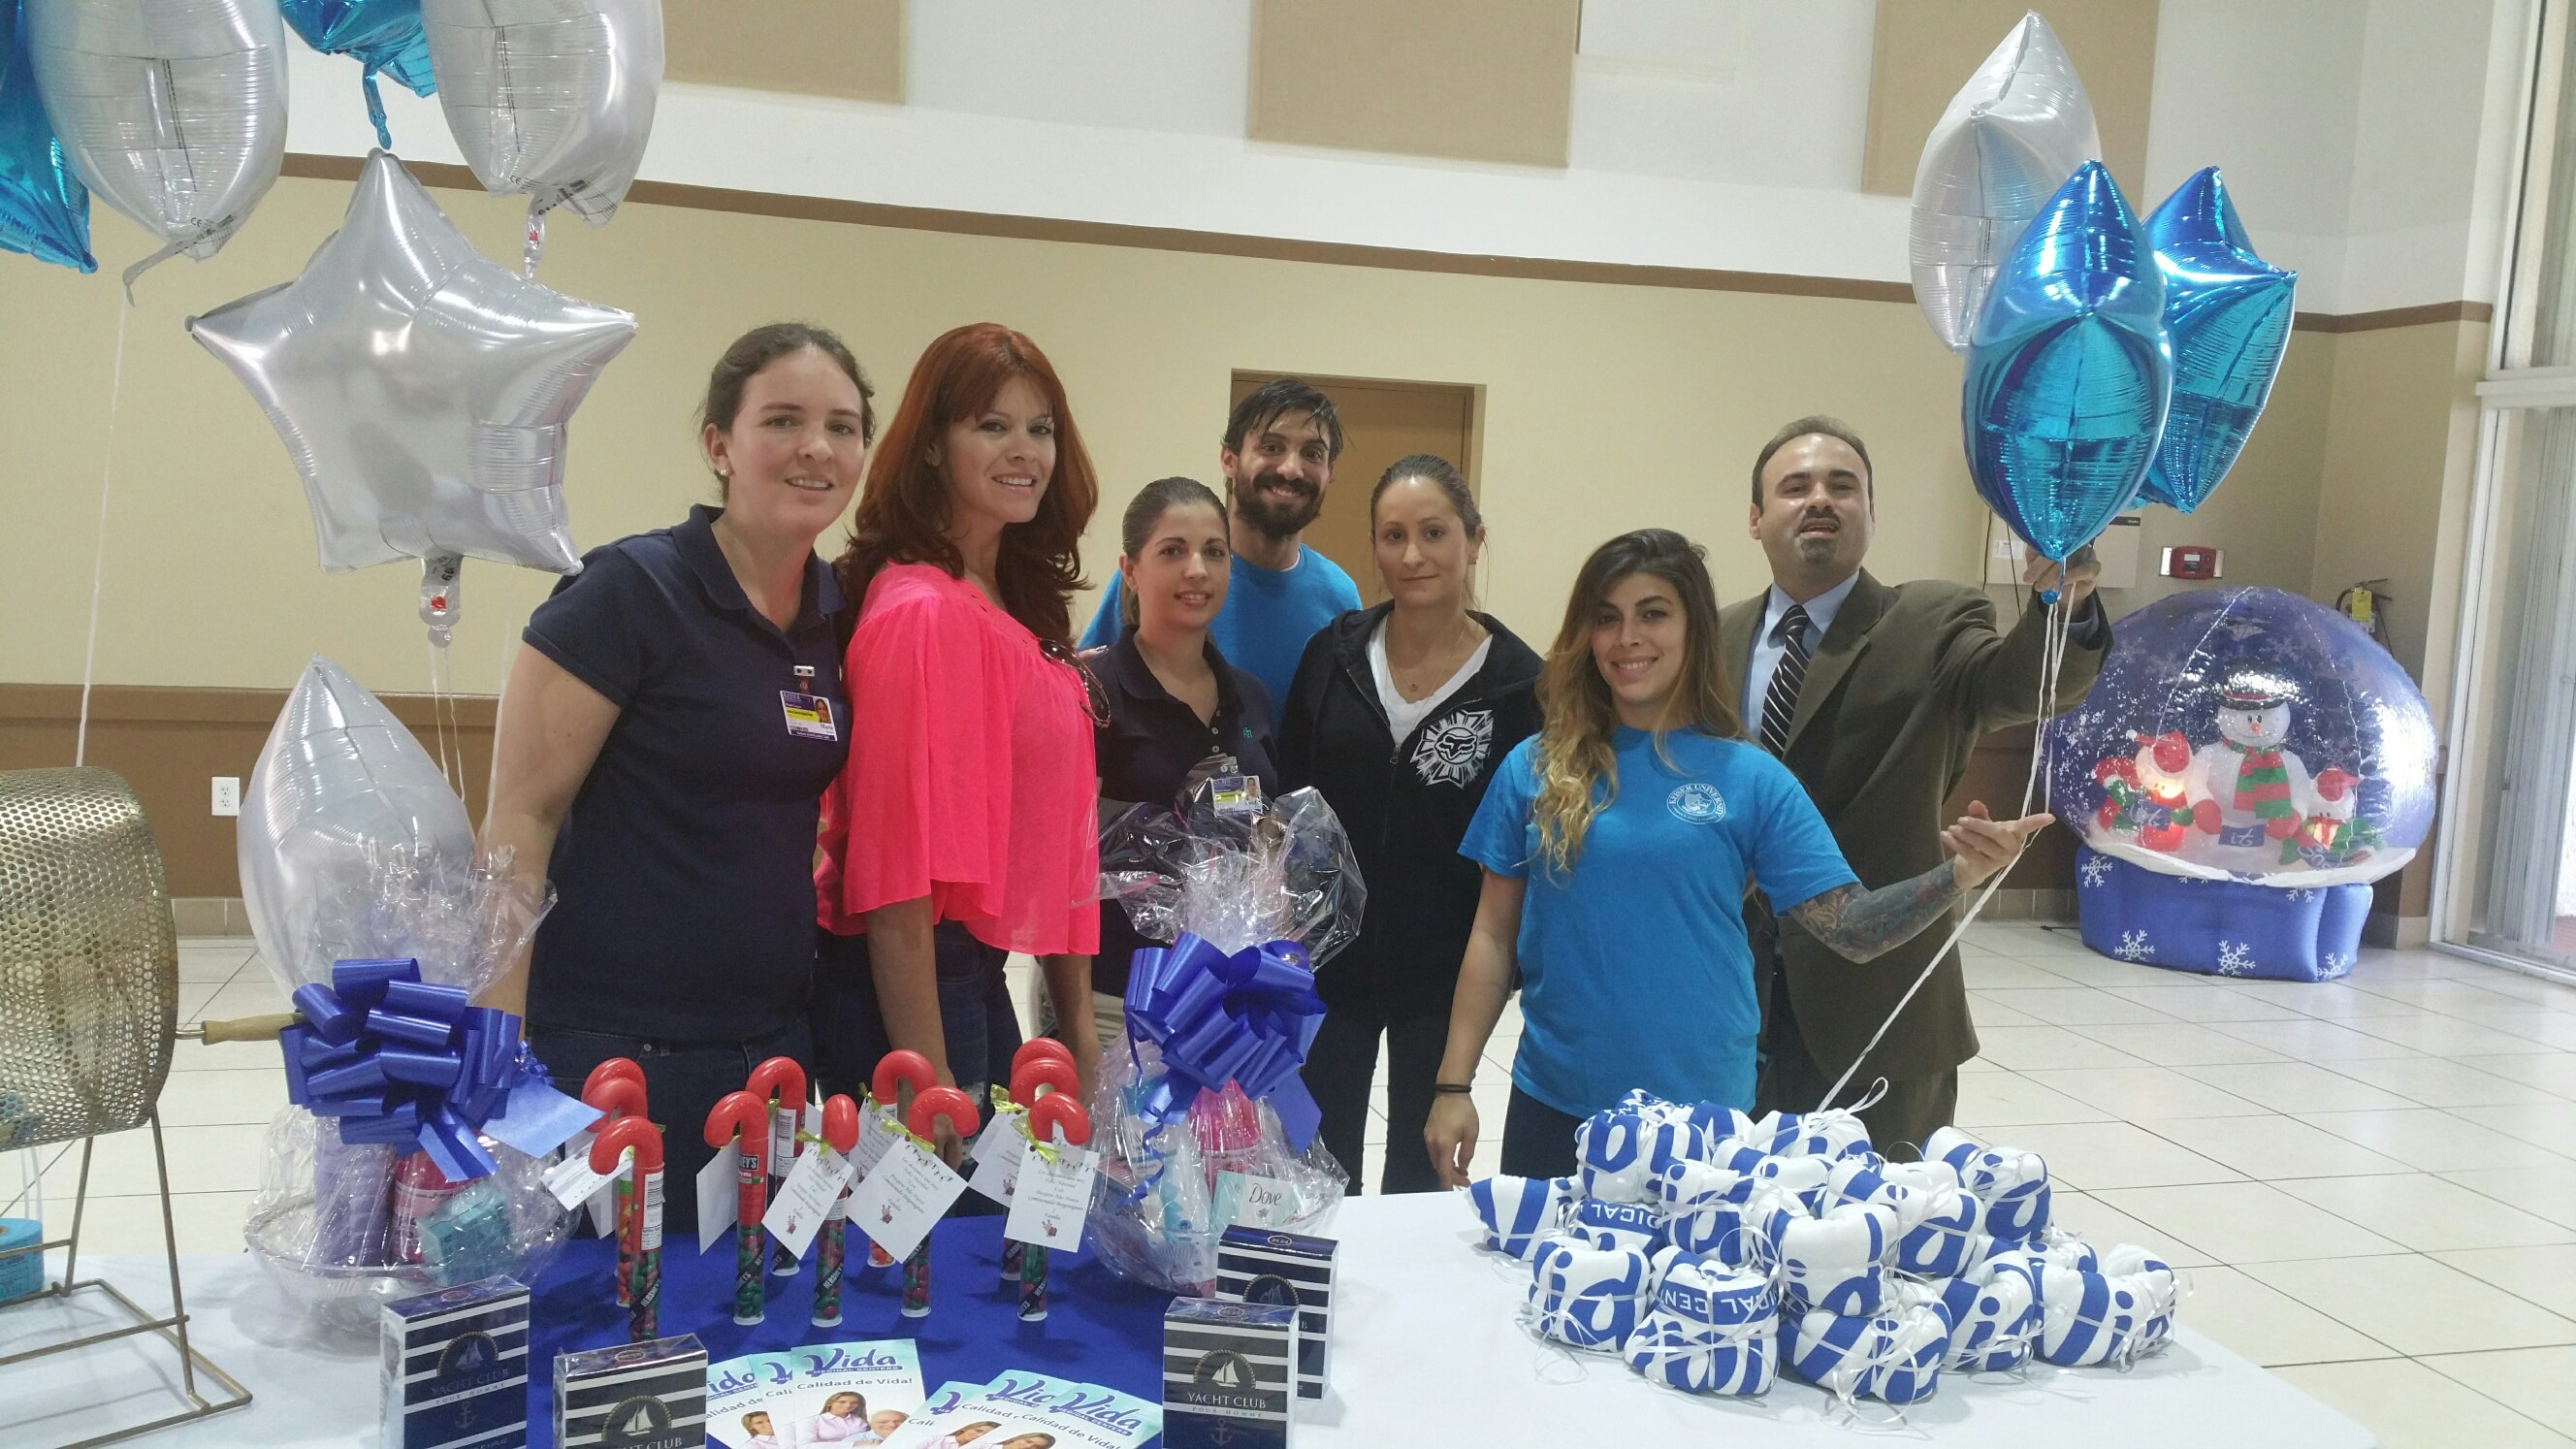 Miami Students Volunteer at the City of Sweetwater's Senior Center